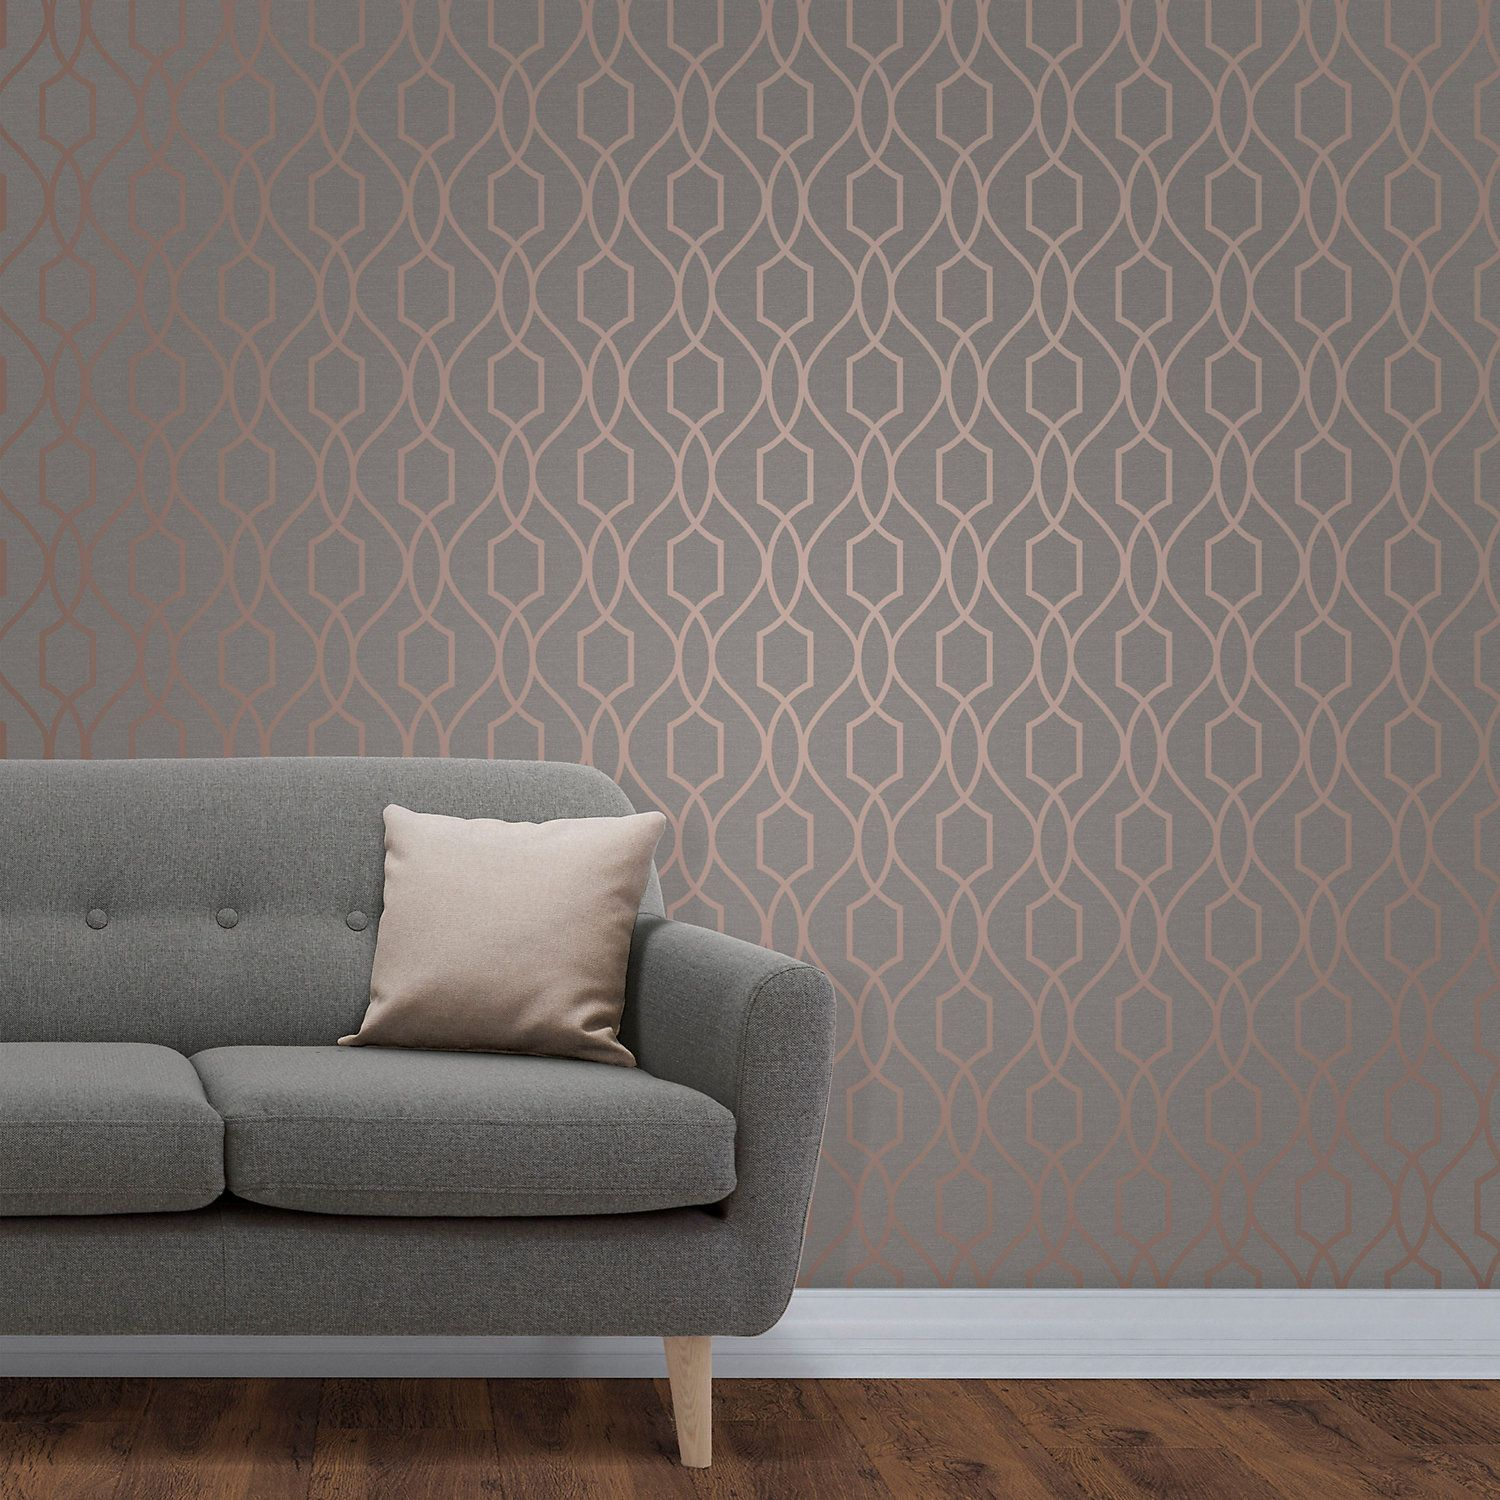 Fine Decor Grey Copper Effect Geometric Wallpaper Lounge In 2019